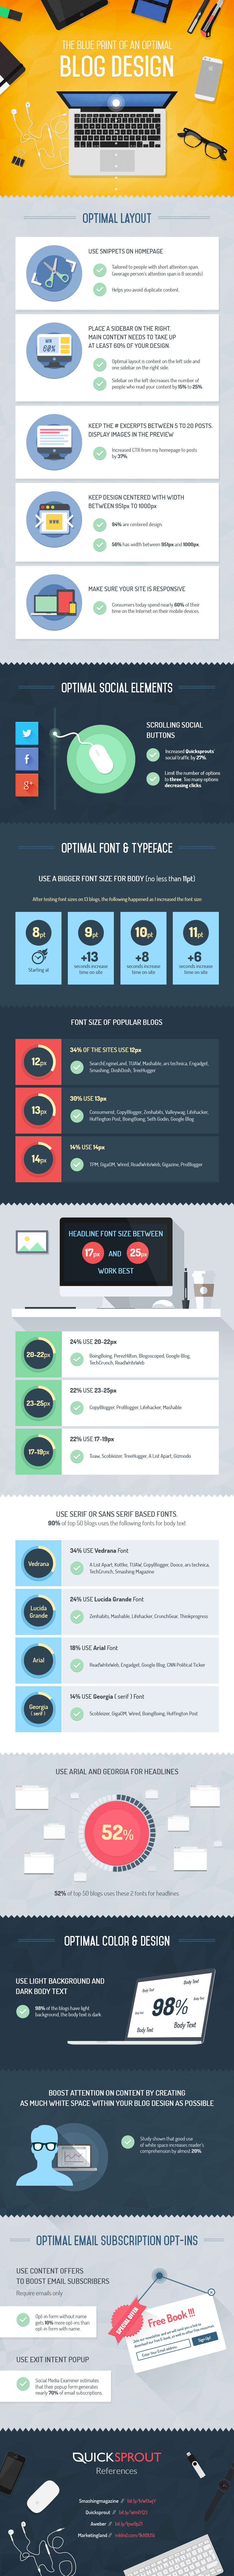 Blog Design Blaupause (Infografik)